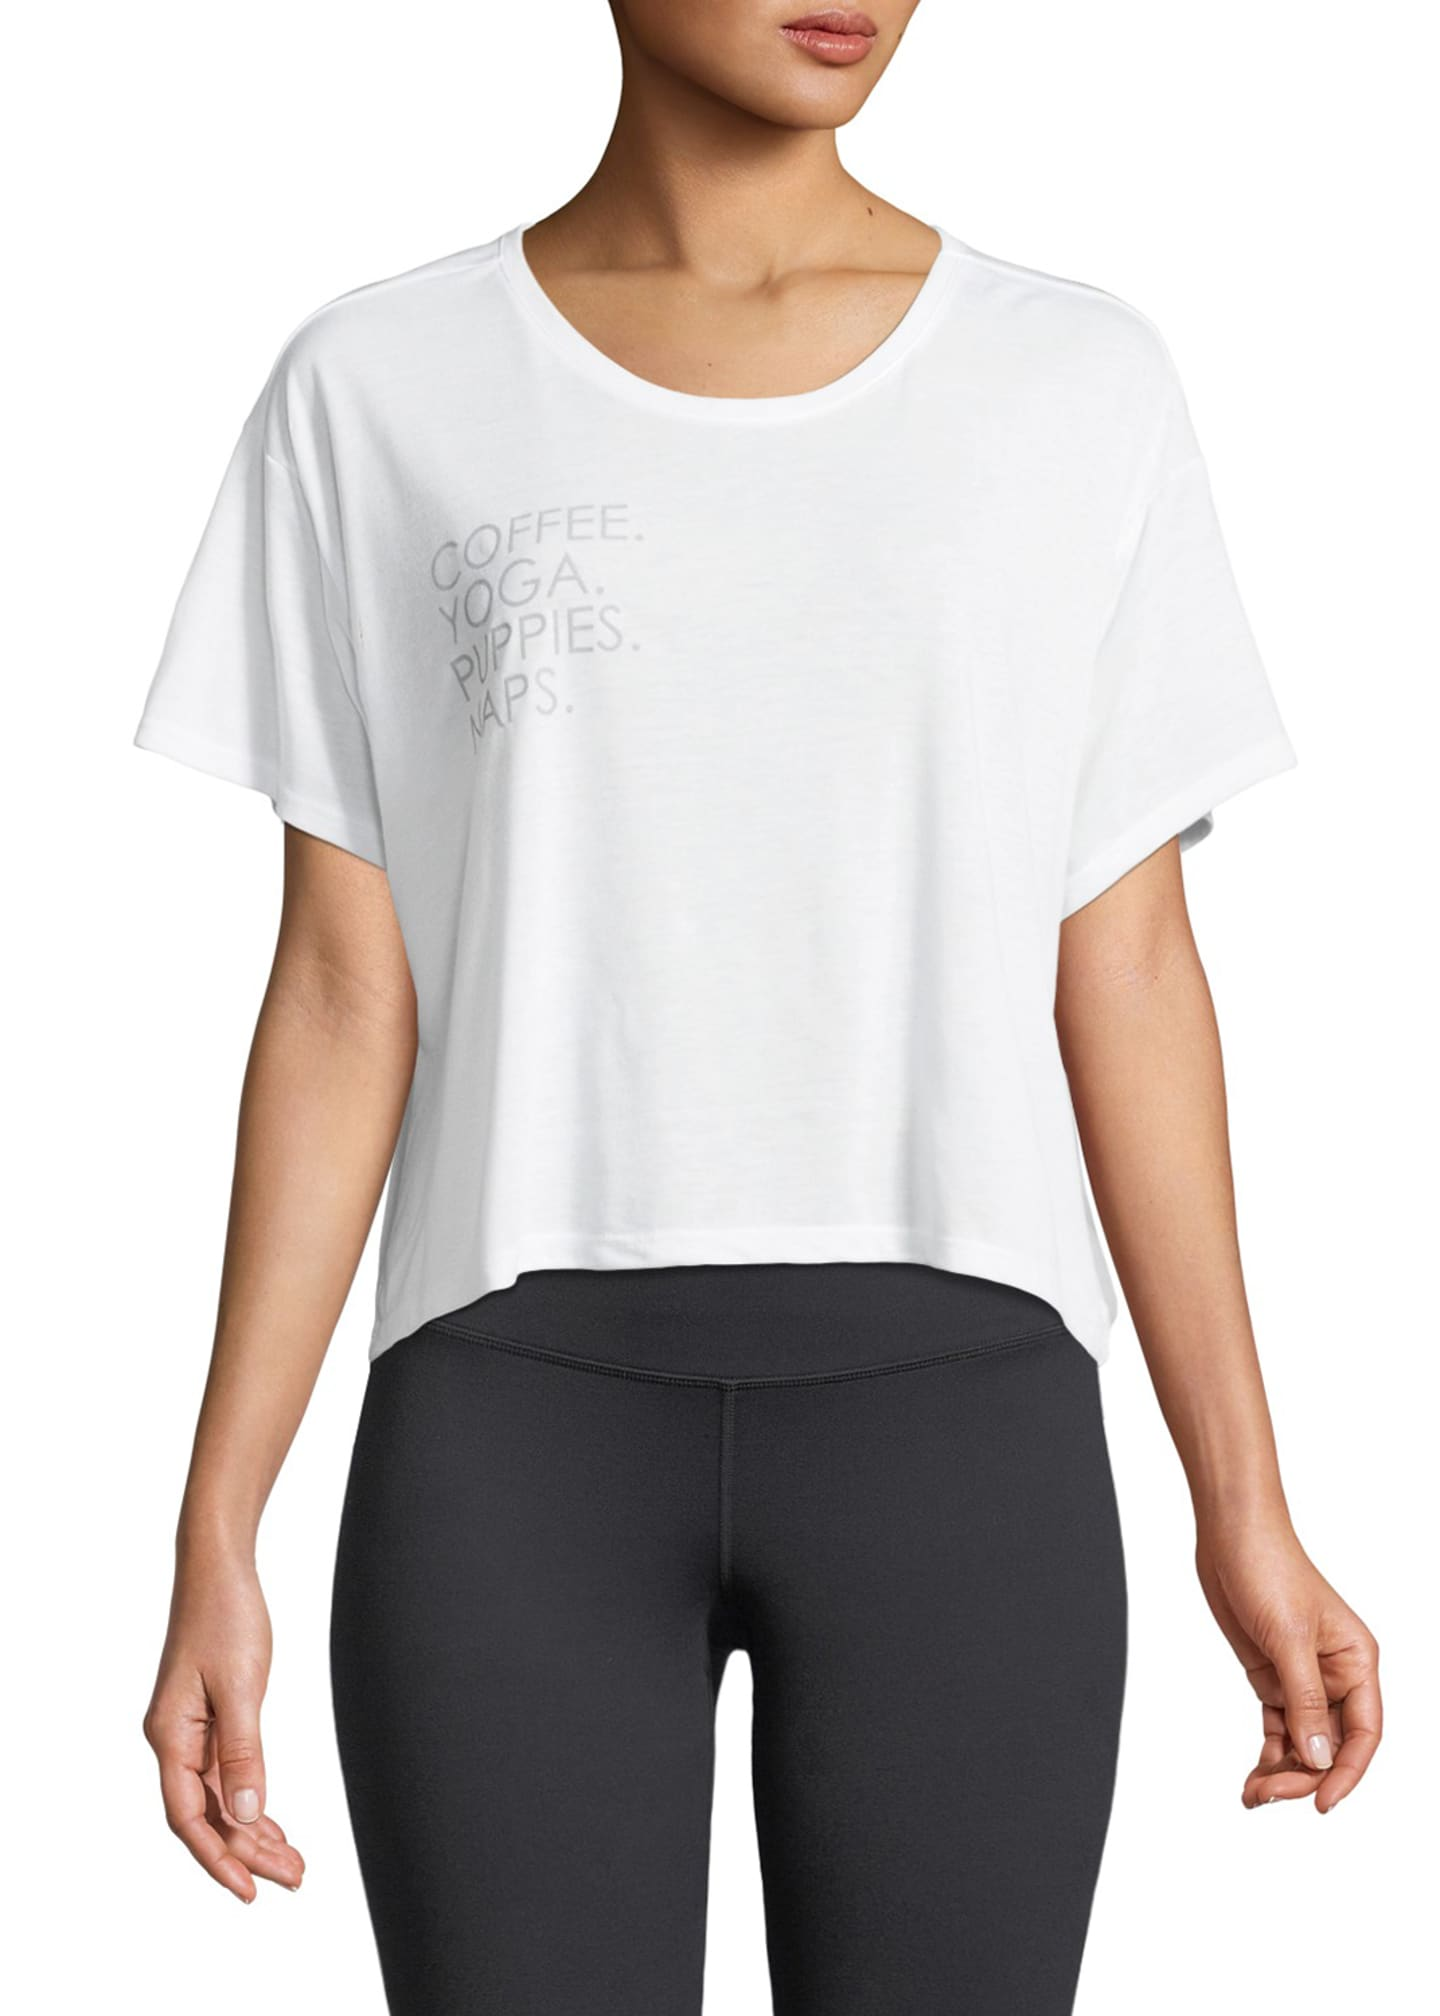 FOR BETTER NOT WORSE Boxy Short-Sleeve Graphic Tee